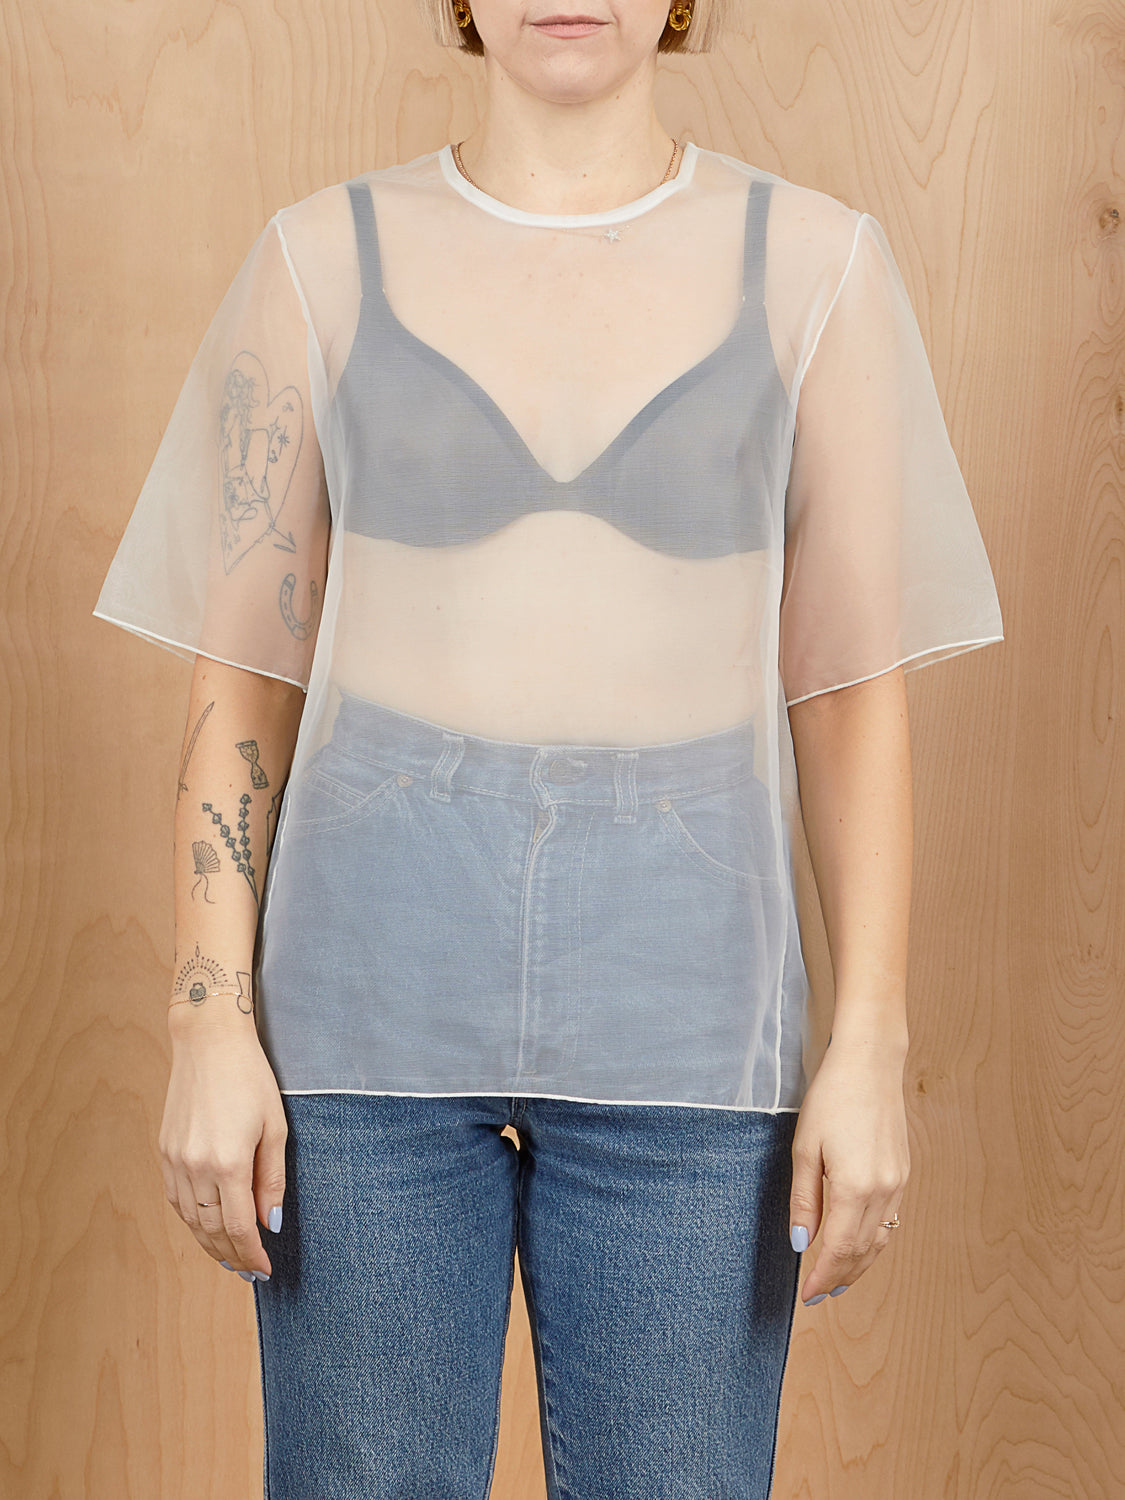 Oak + Fort Sheer Top